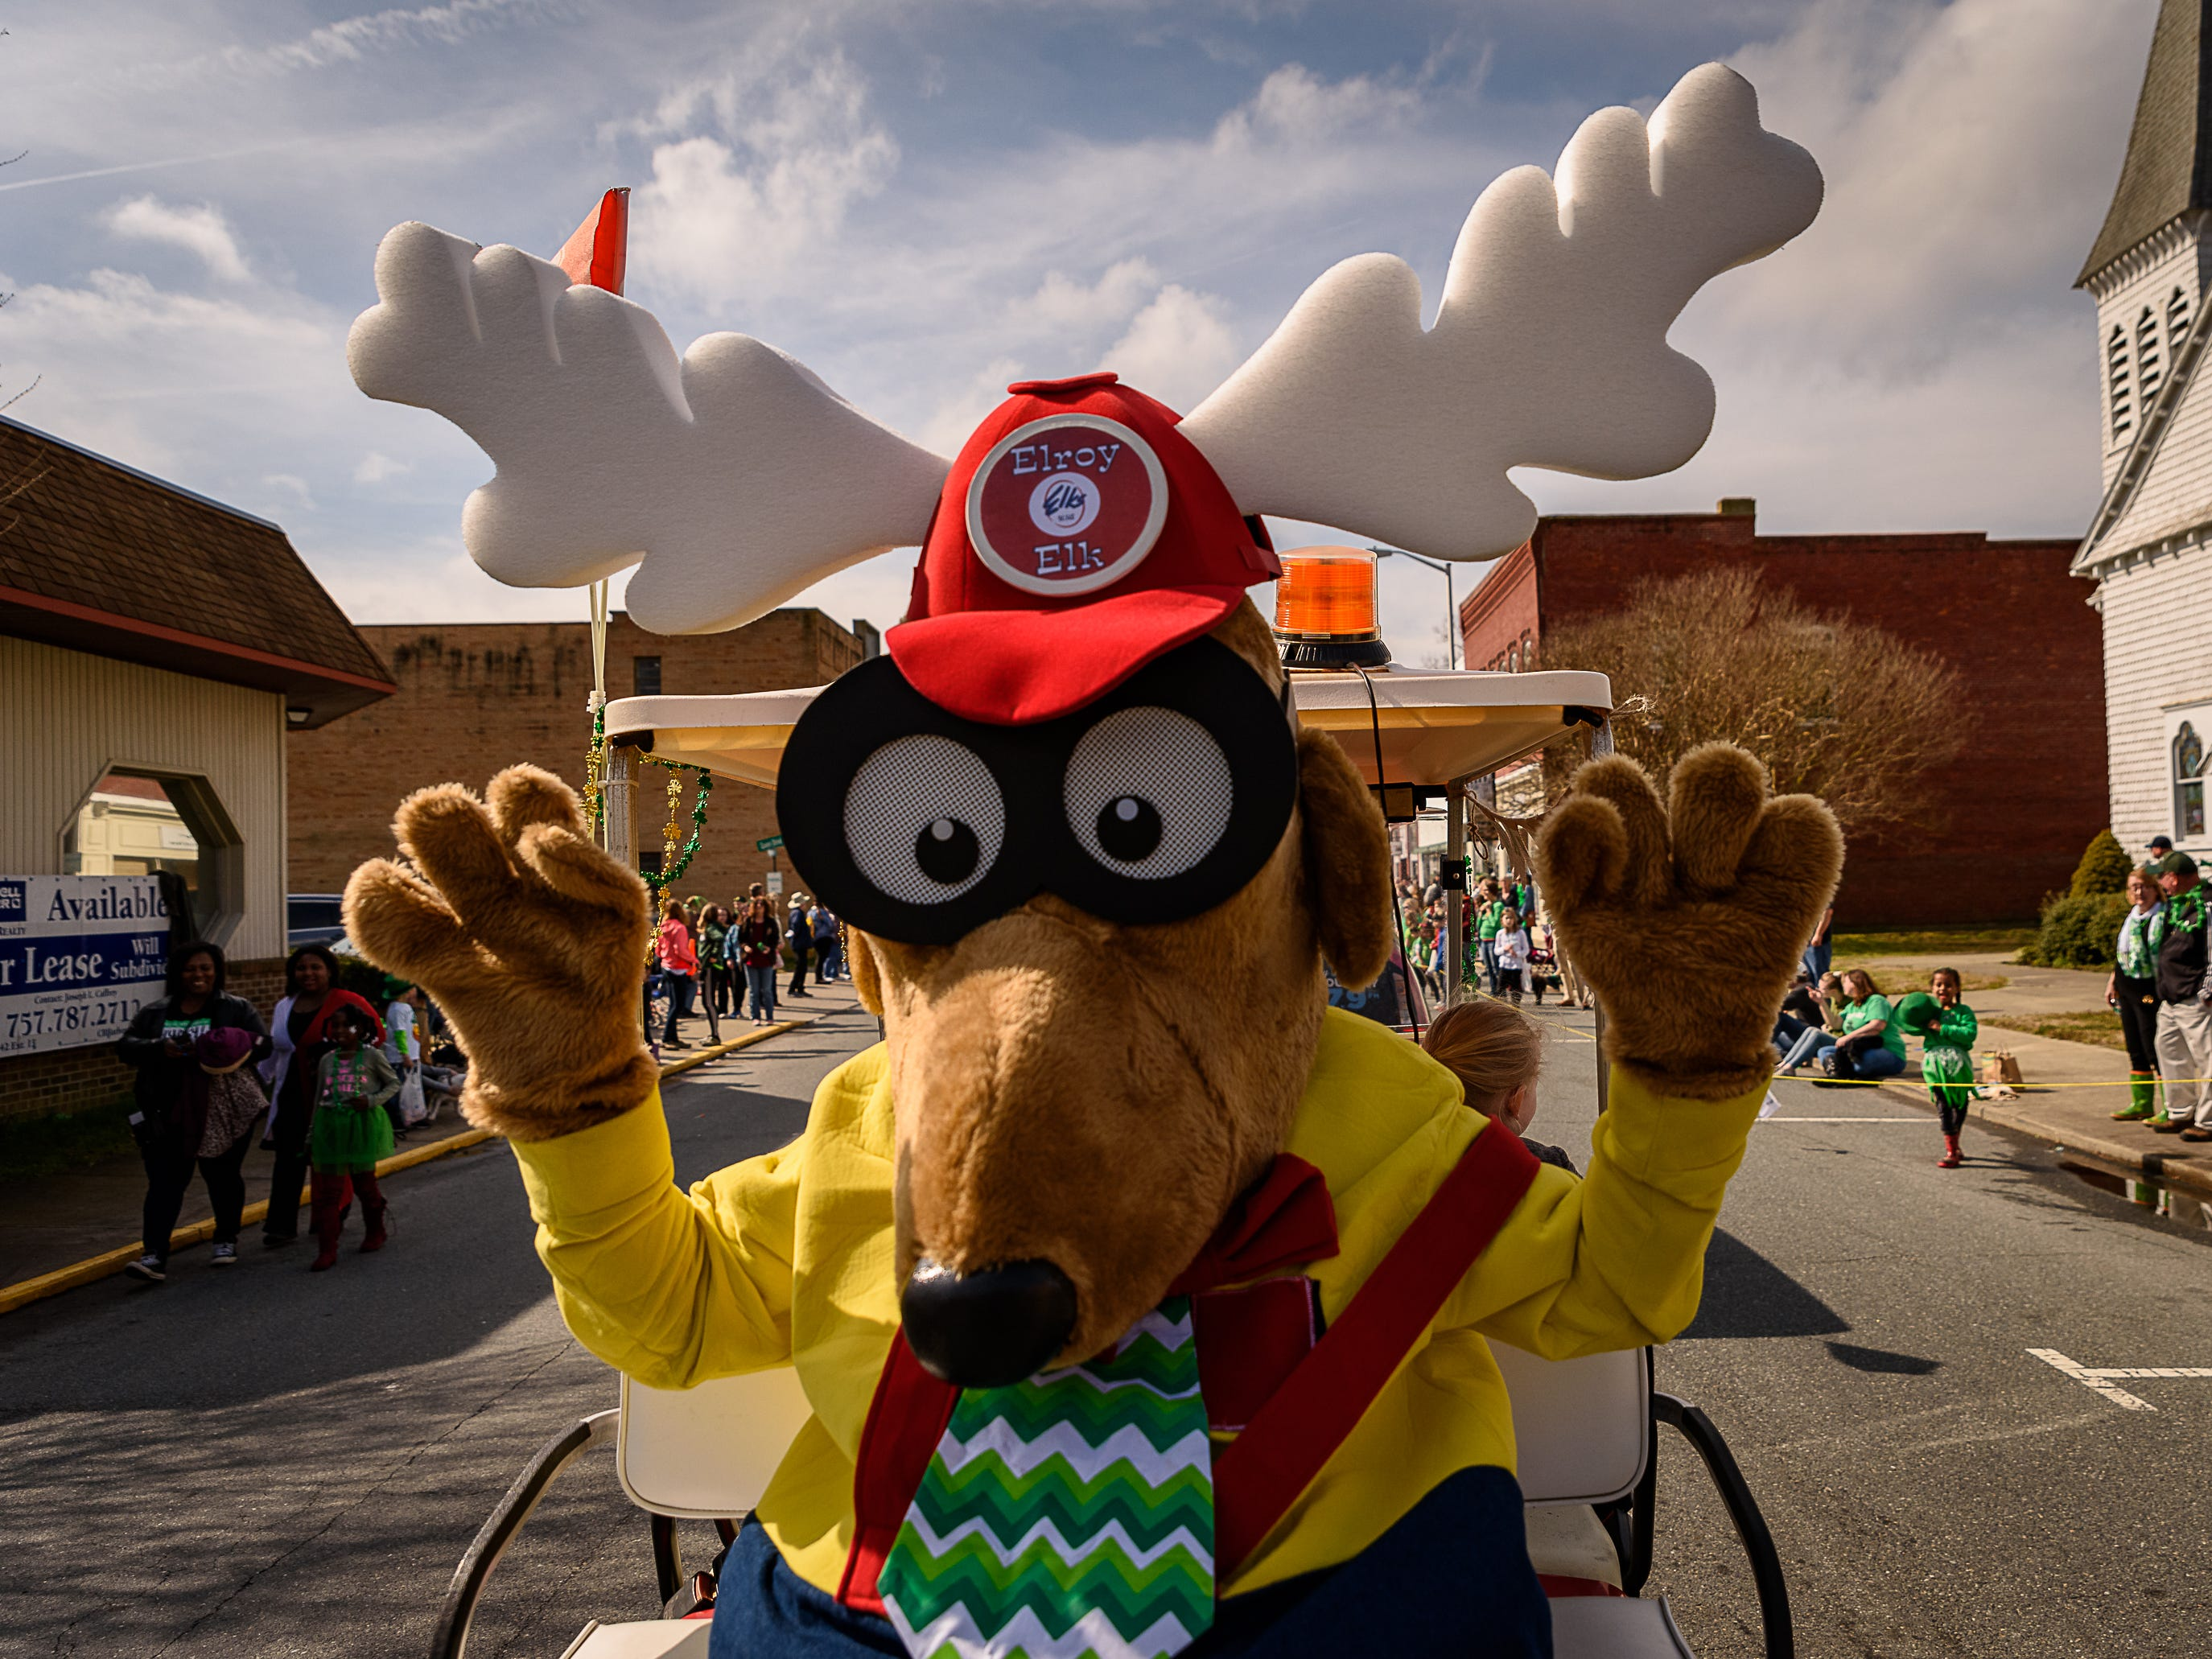 Elroy Elk. the local Elks Club mascot, rides a golf cart through downtown Onancock in the St. Patrick's parade.